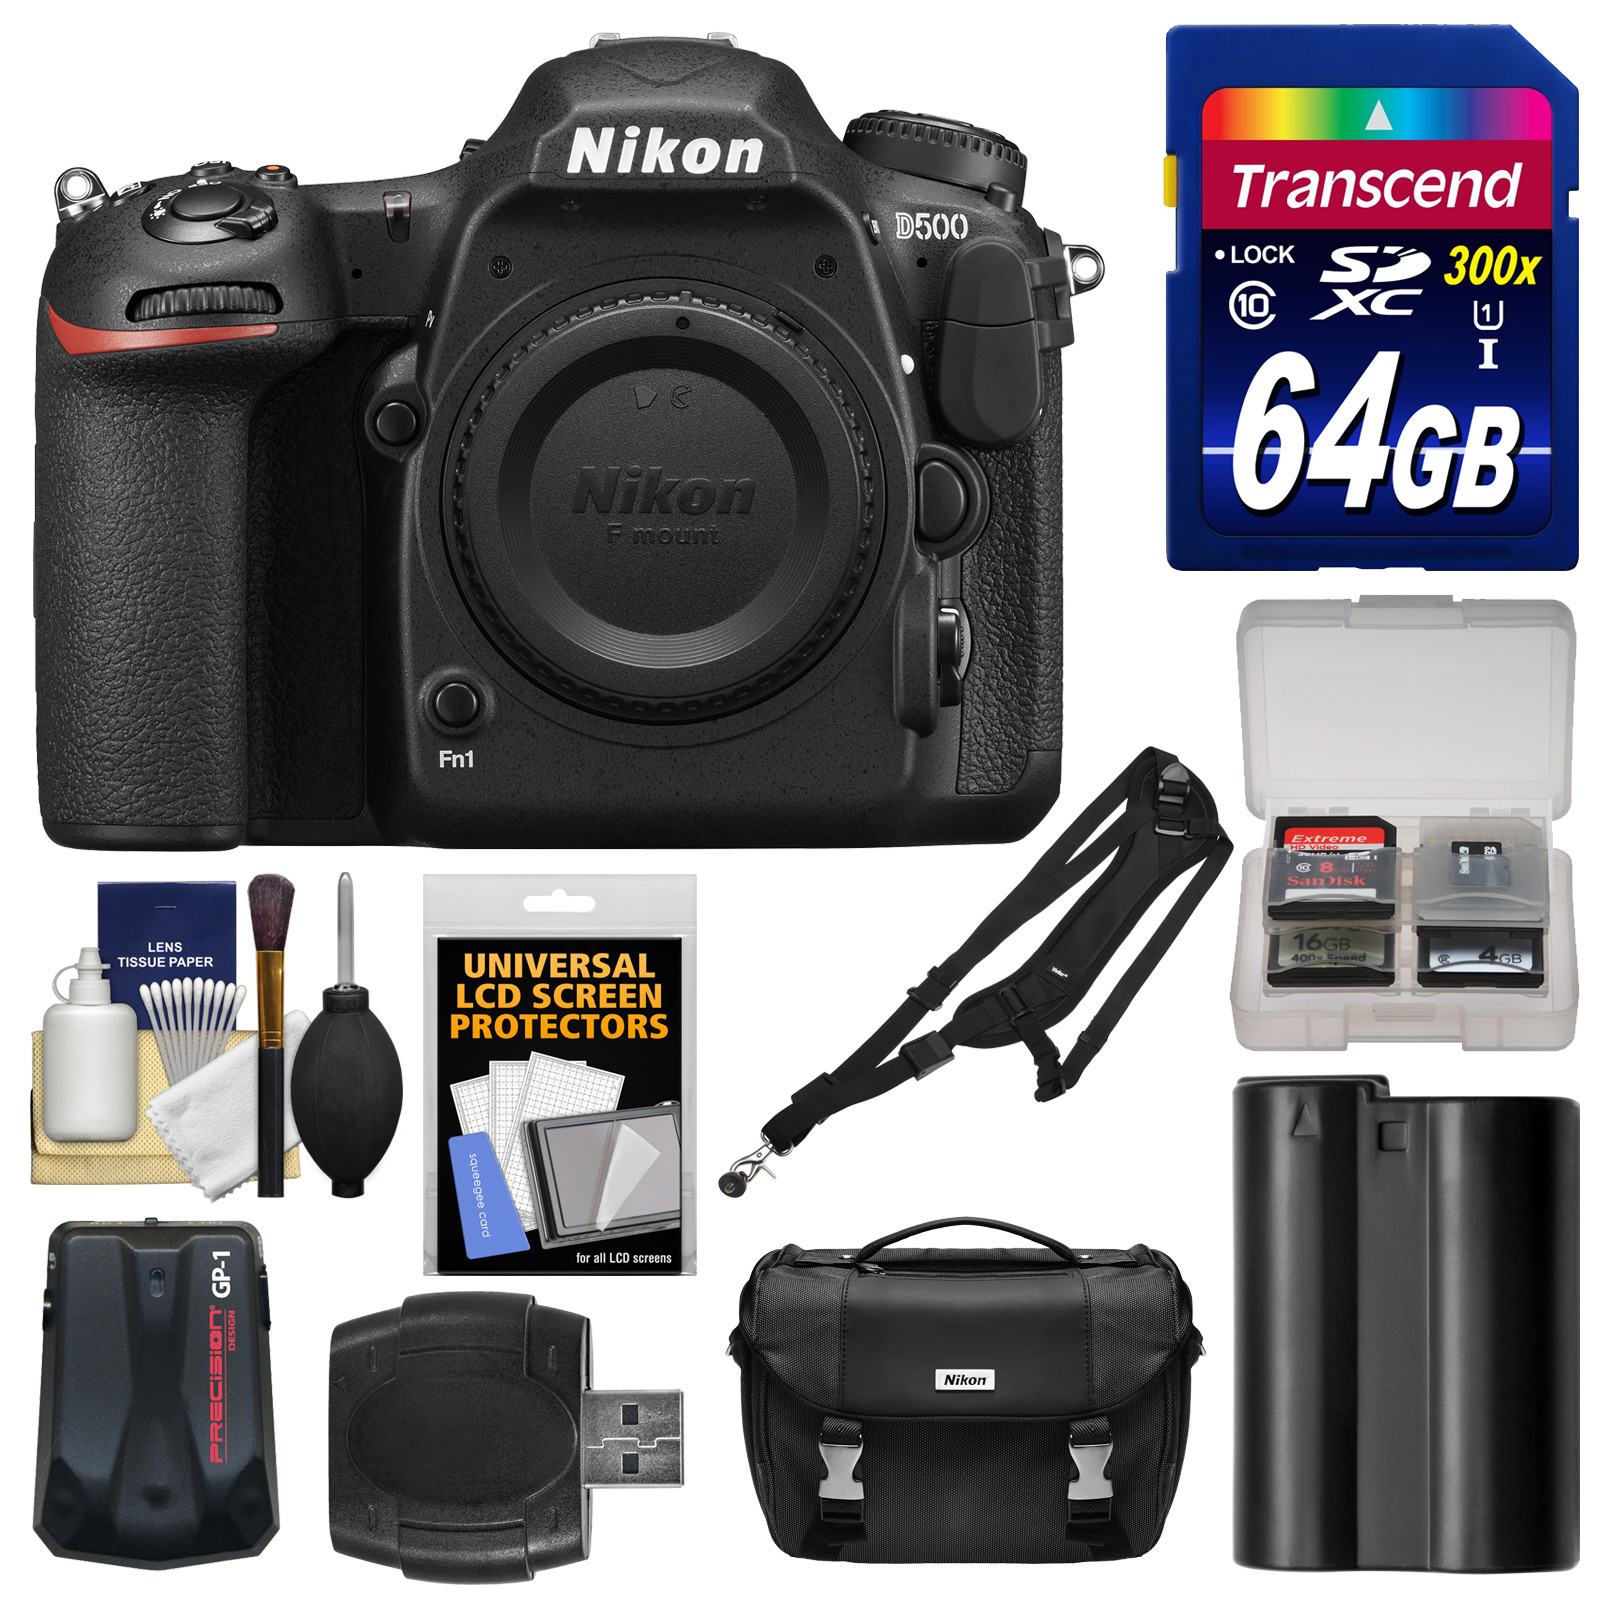 Nikon D500 Wi-Fi 4K Digital SLR Camera Body with 64GB Card + Case + Battery + Strap + GPS Adapter + Kit by Nikon